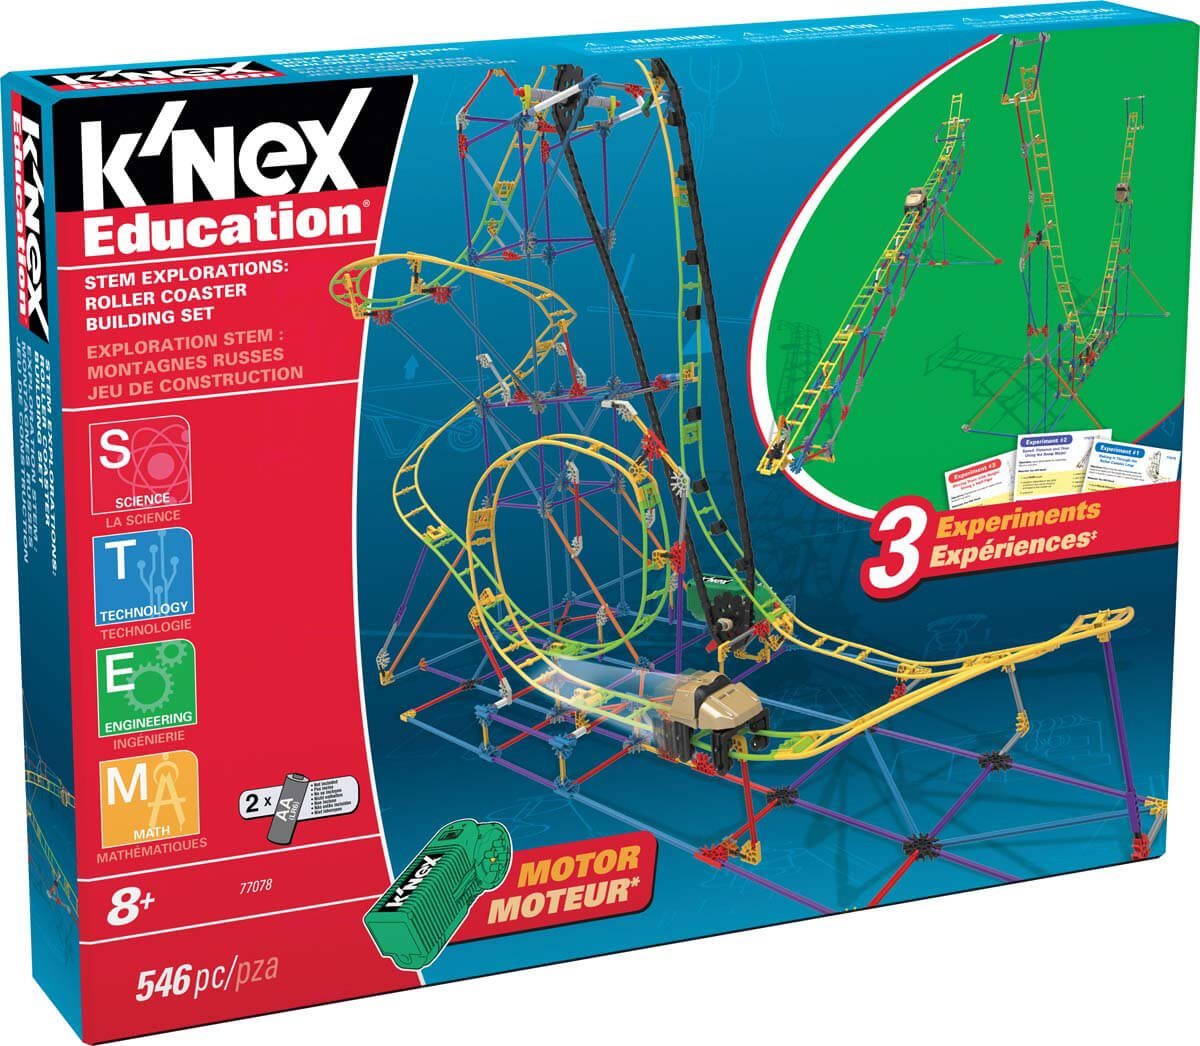 STEM Explorations: Roller Coaster Building Set